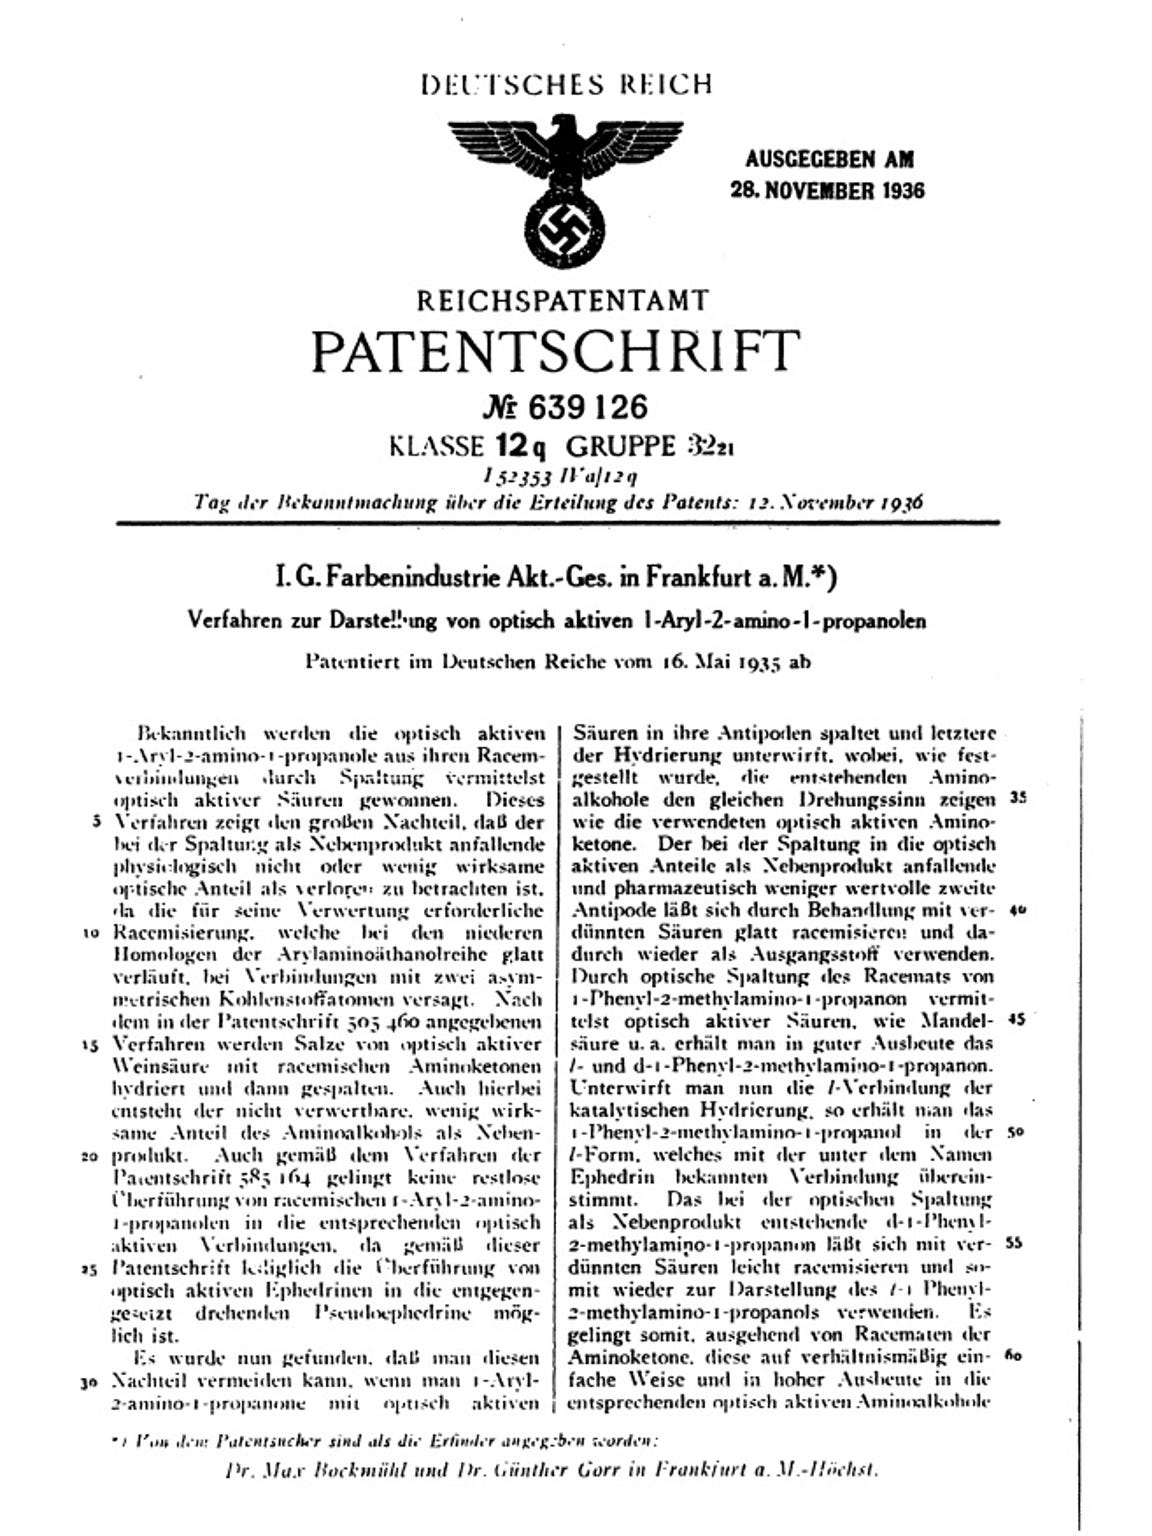 A German patent from 1936 discussing techniques for